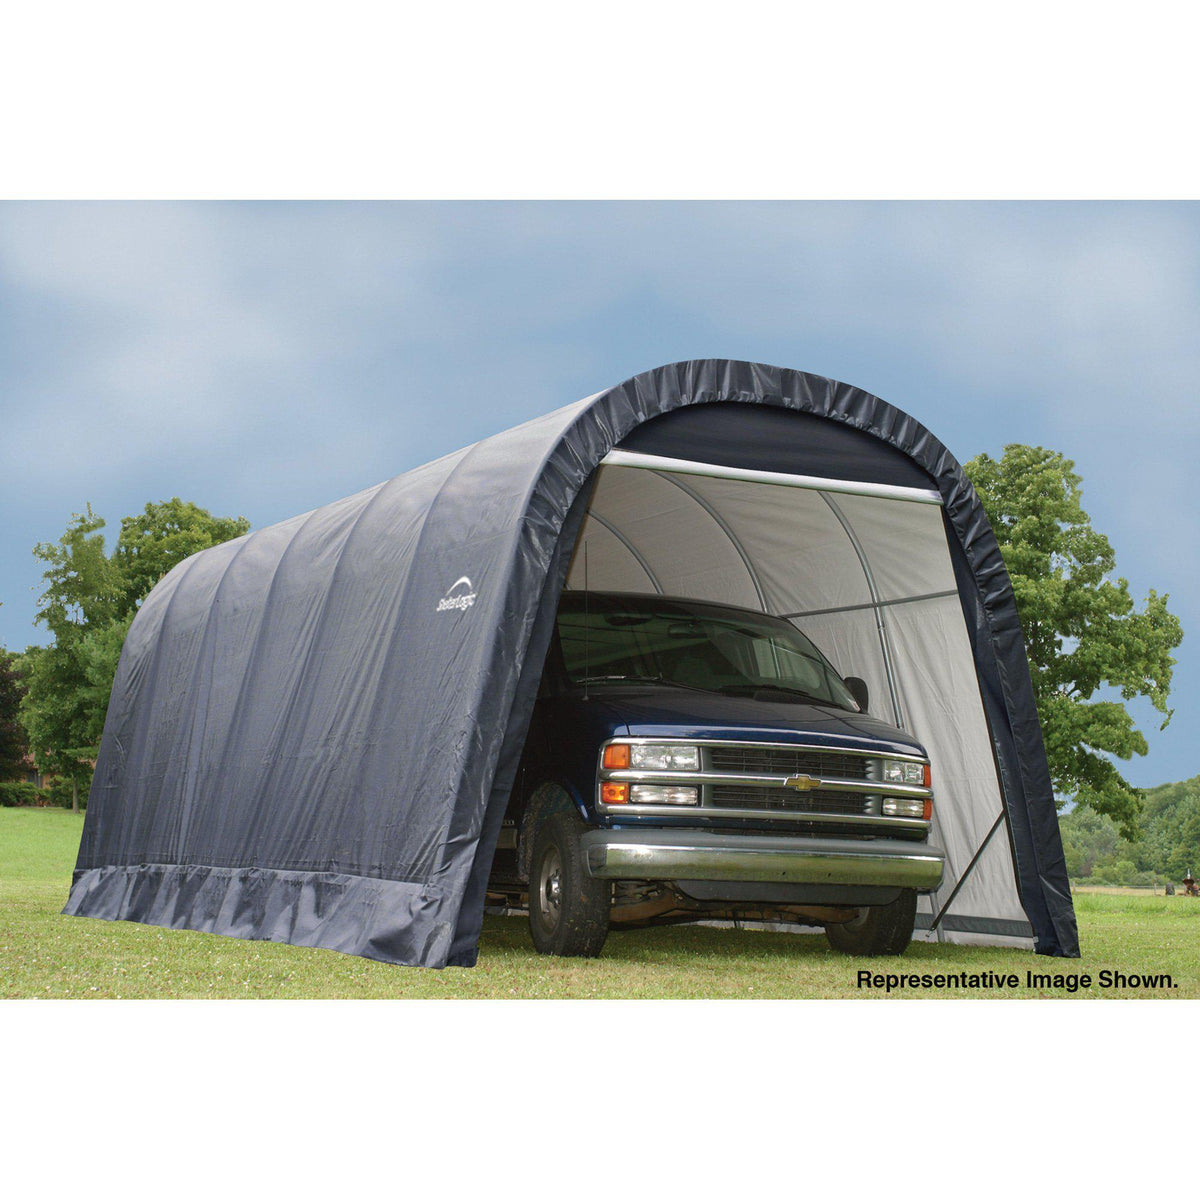 ShelterLogic 12-Ft.W Round-Style Instant Garage - 28ft.L x 12ft.W x 10ft.H, 1 5/8in. Frame, Grey, Model# 902233